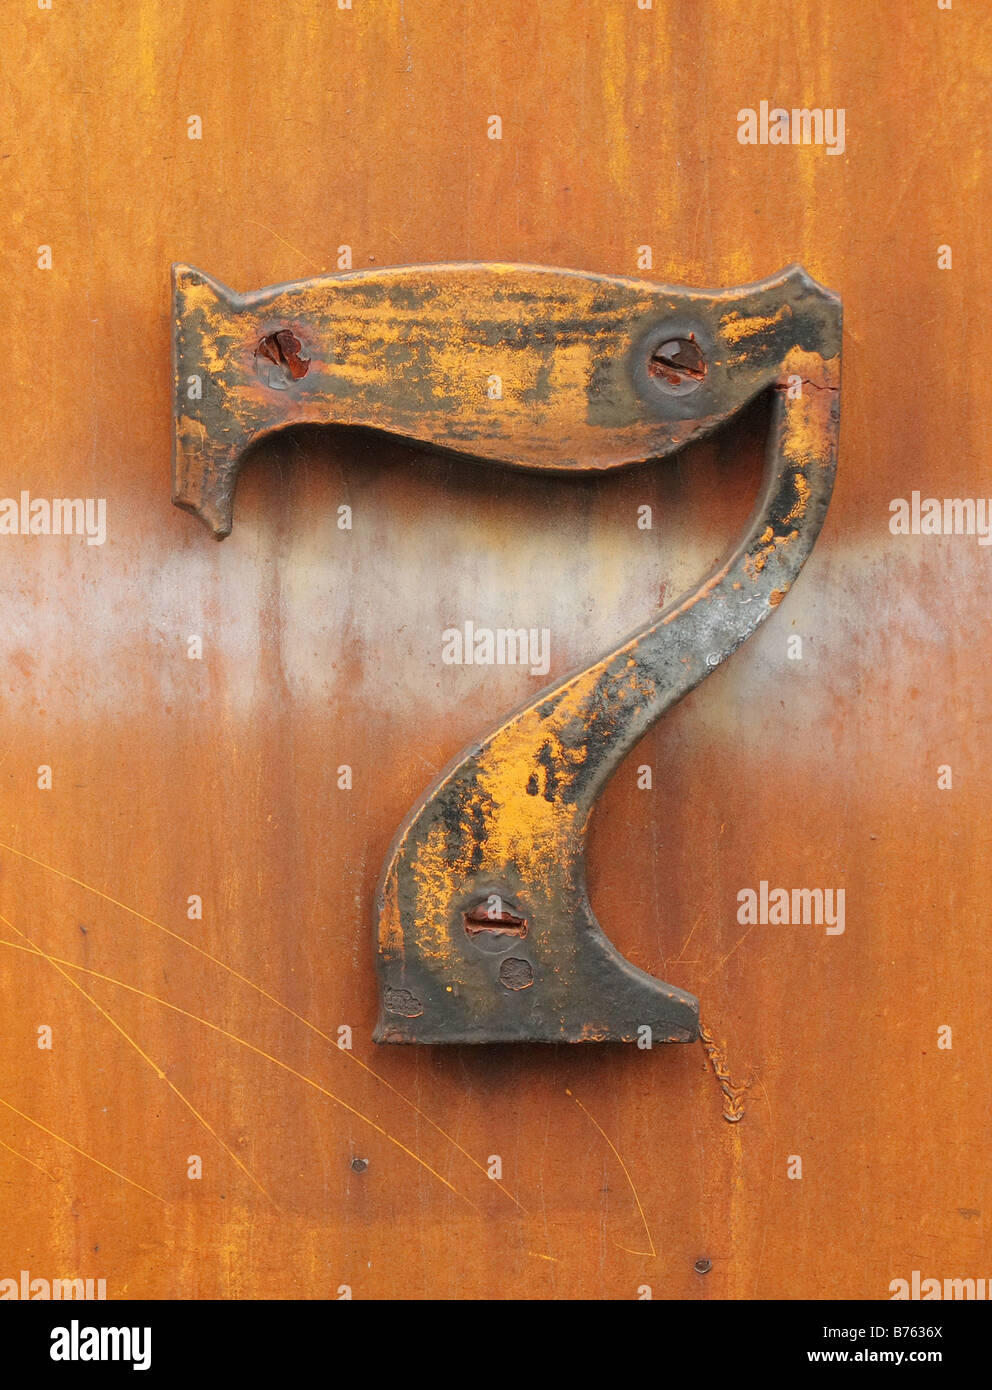 grungy number seven affixed to rusty industrial metal - Stock Image